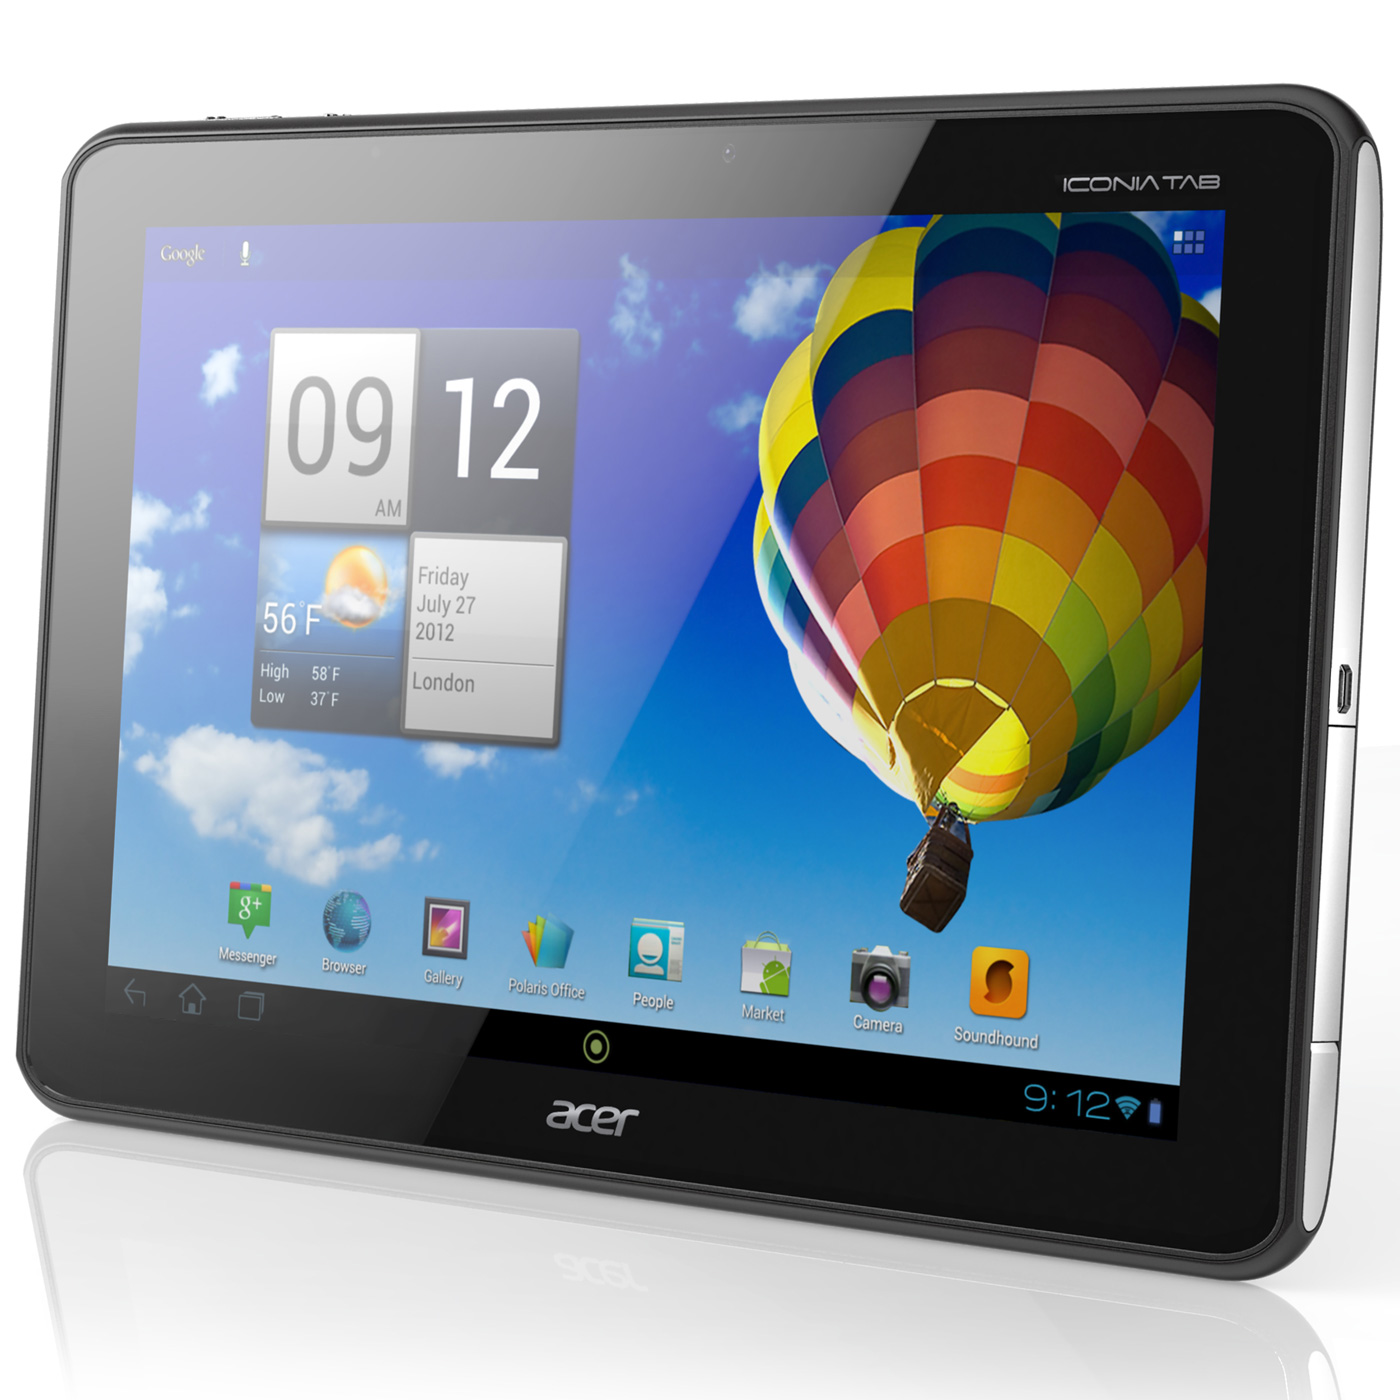 acer iconia tab a510 noire tablette tactile acer sur ldlc. Black Bedroom Furniture Sets. Home Design Ideas